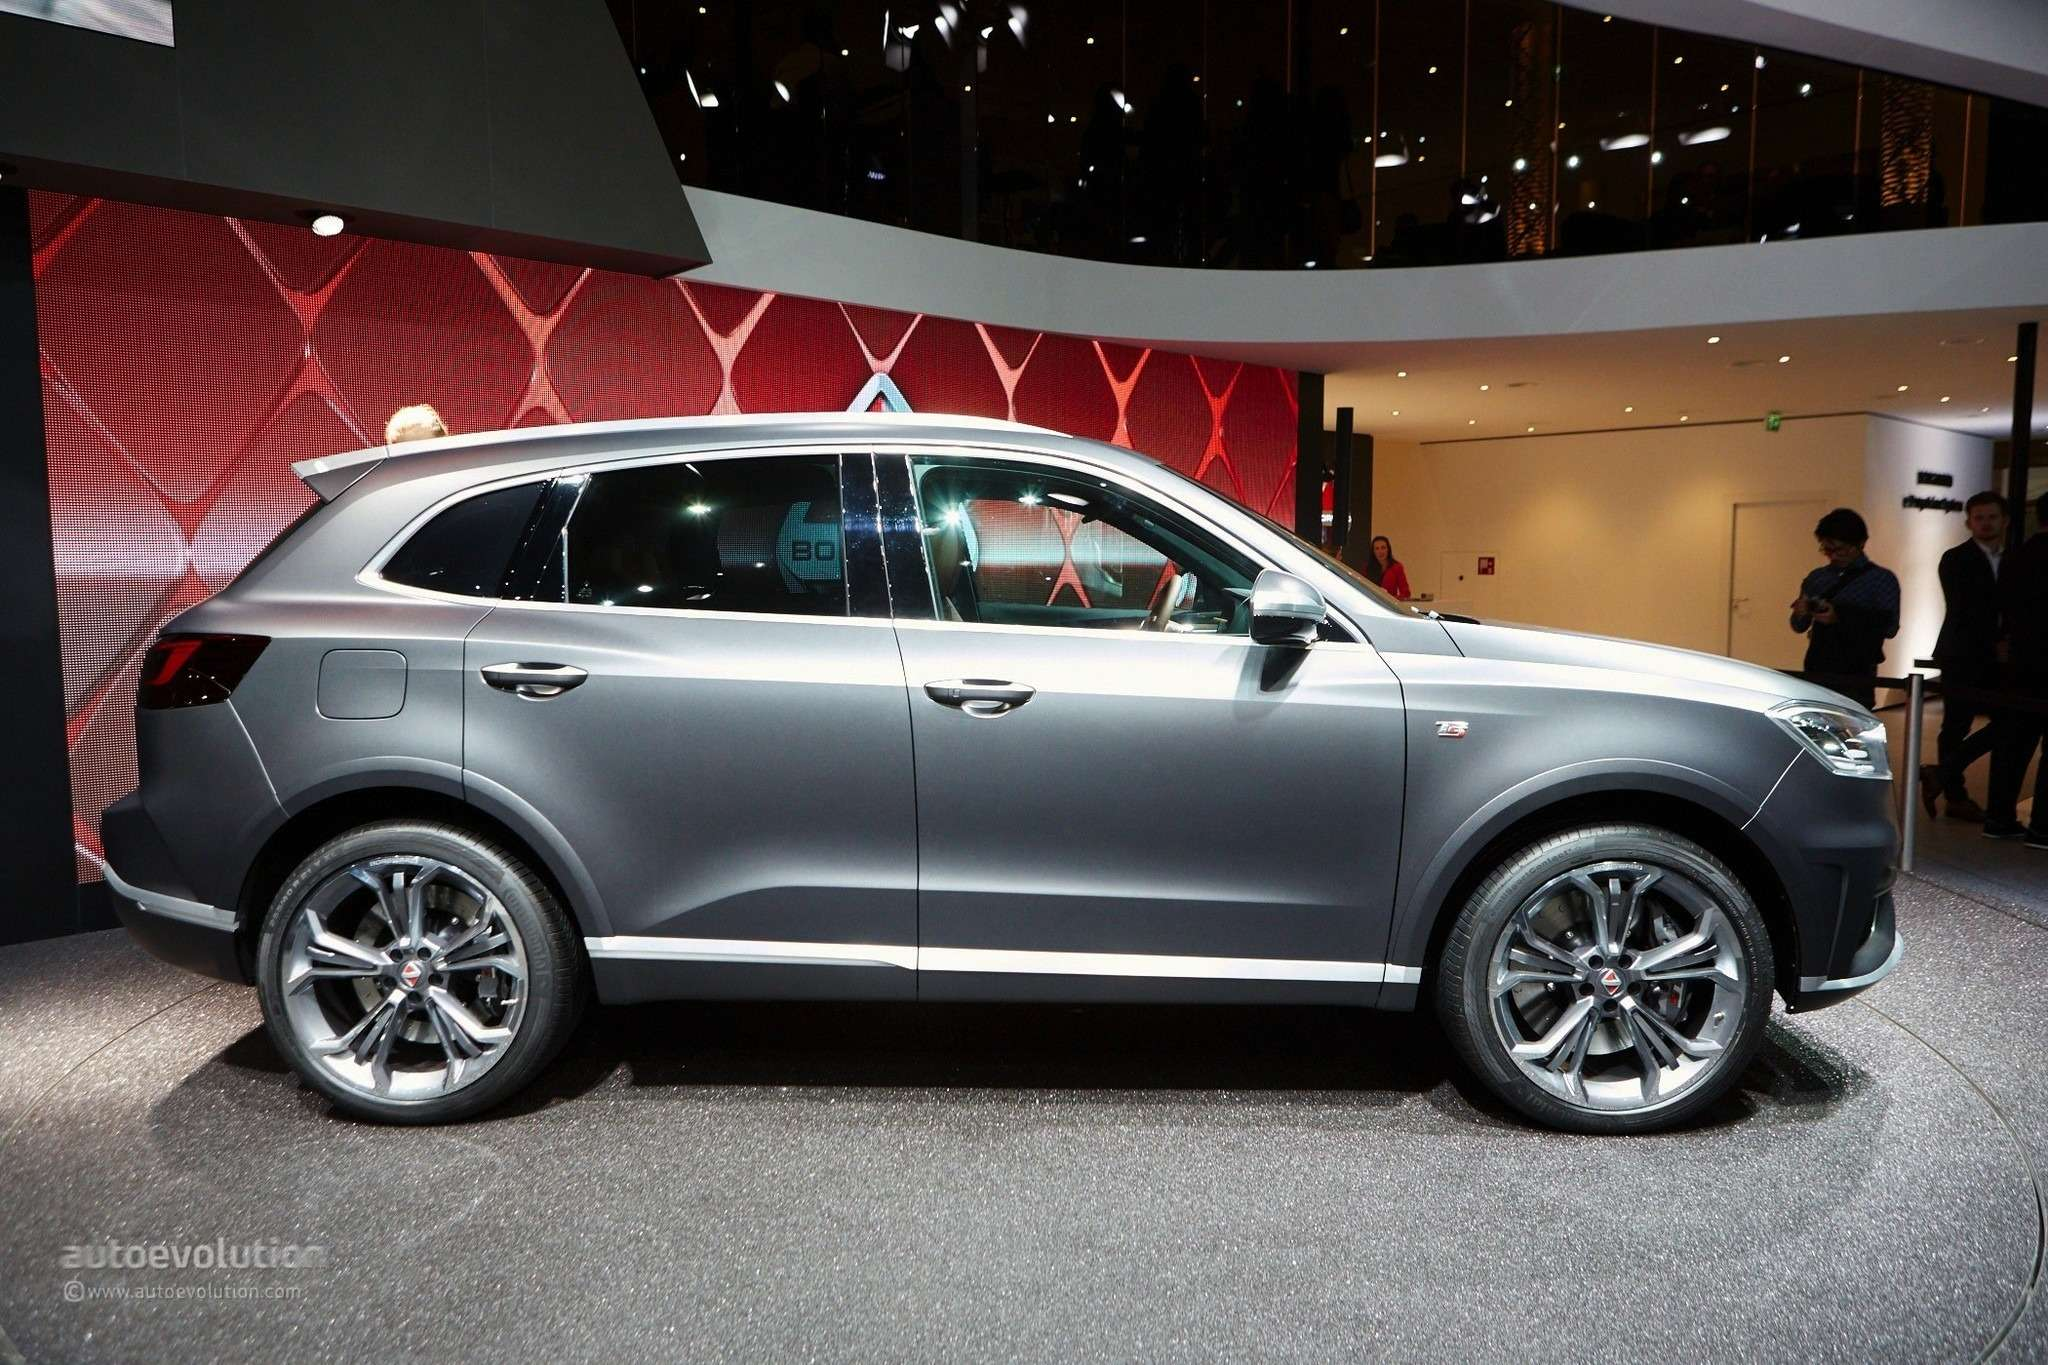 borgward-is-officially-back-with-its-bx7-suv-in-frankfurt-live-photos_26